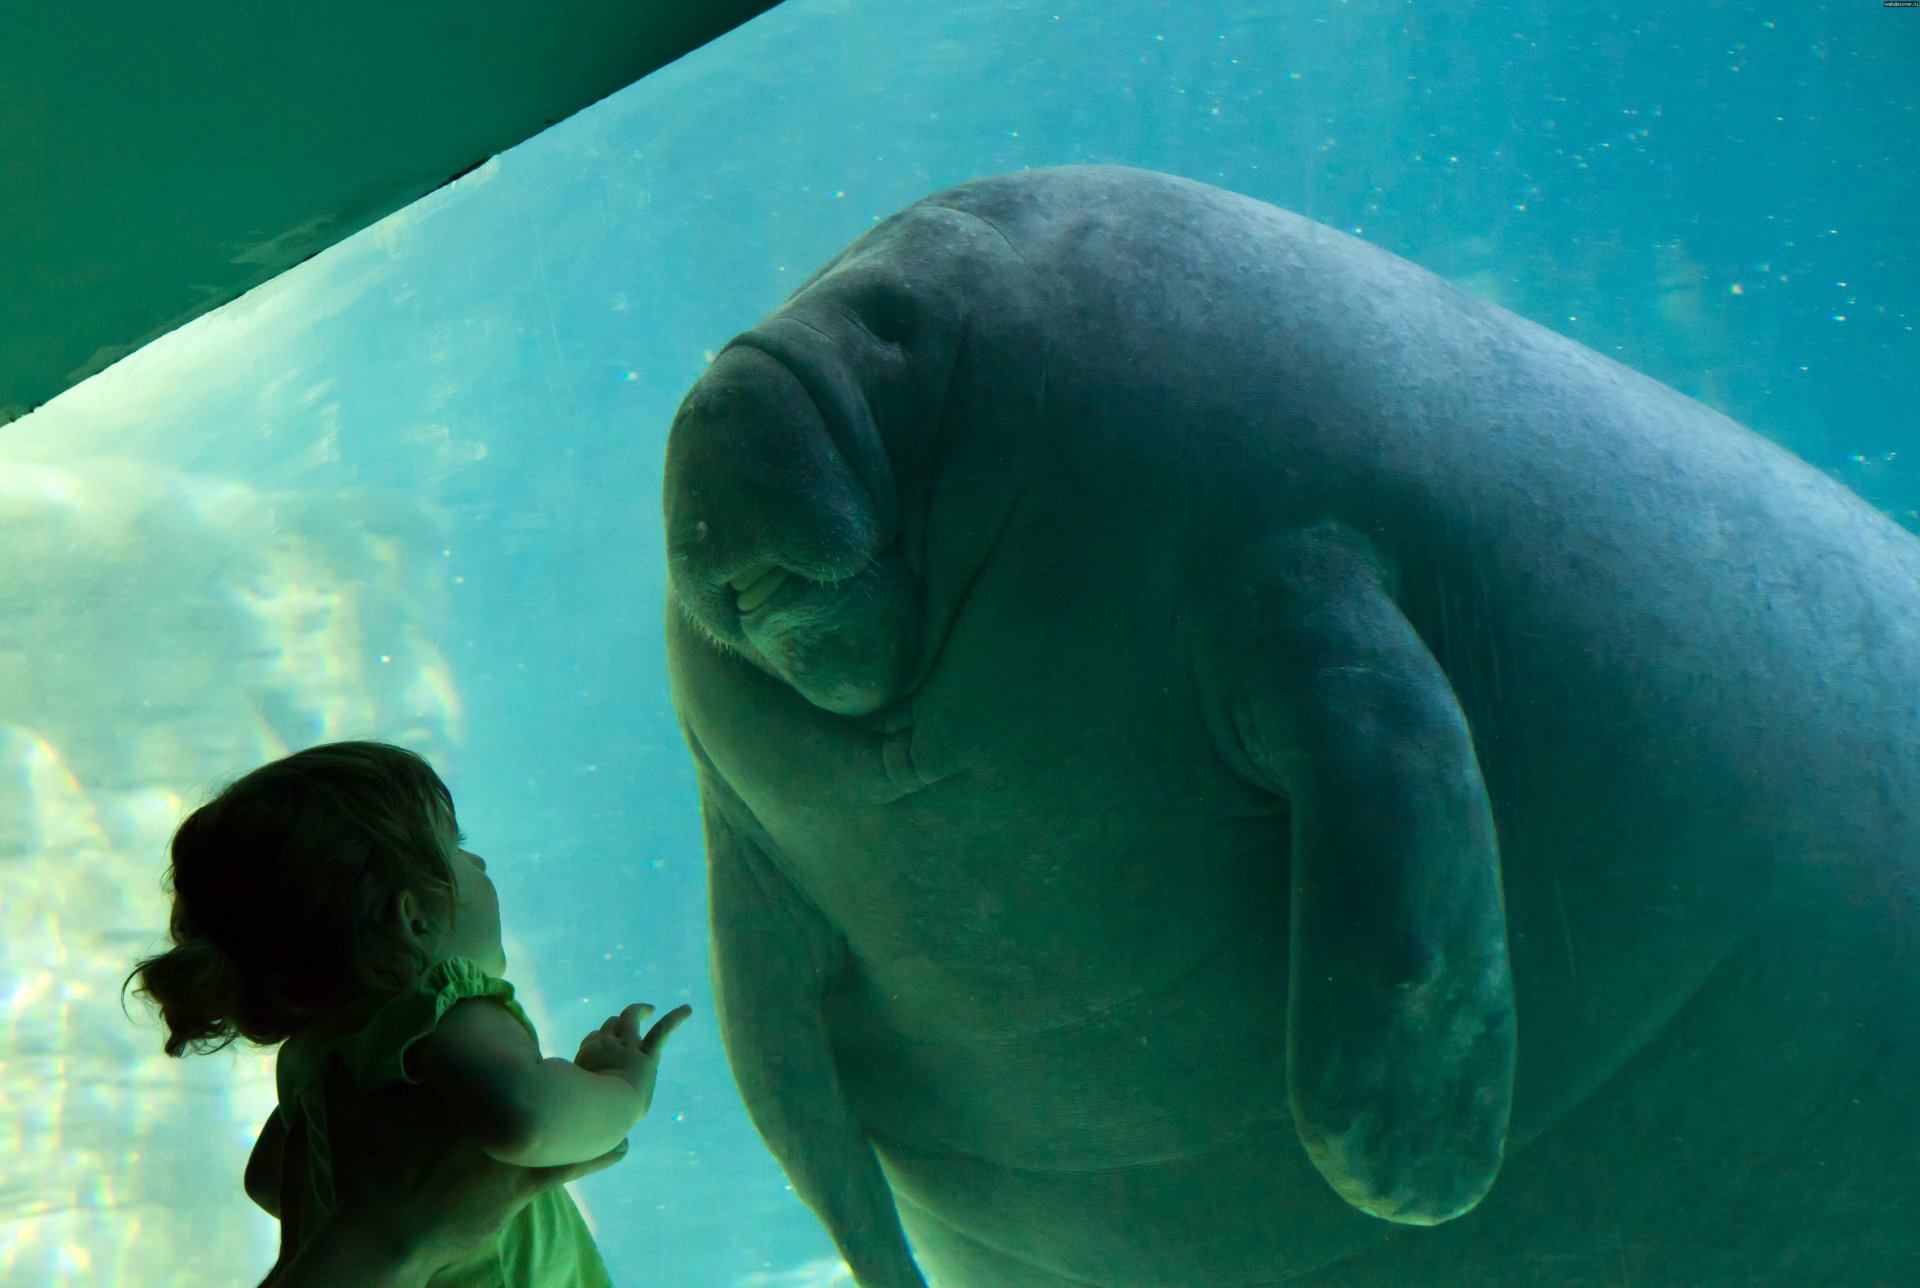 the manatee should be protected The english declared florida a manatee sanctuary in the 1700s and hunting manatees was prohibited sanctuary from hunters has not protected the manatee from speed boats, however speed limits in waterways can help manatees by giving them enough time to avoid collisions and reducing the severity of collisions when they do occur.